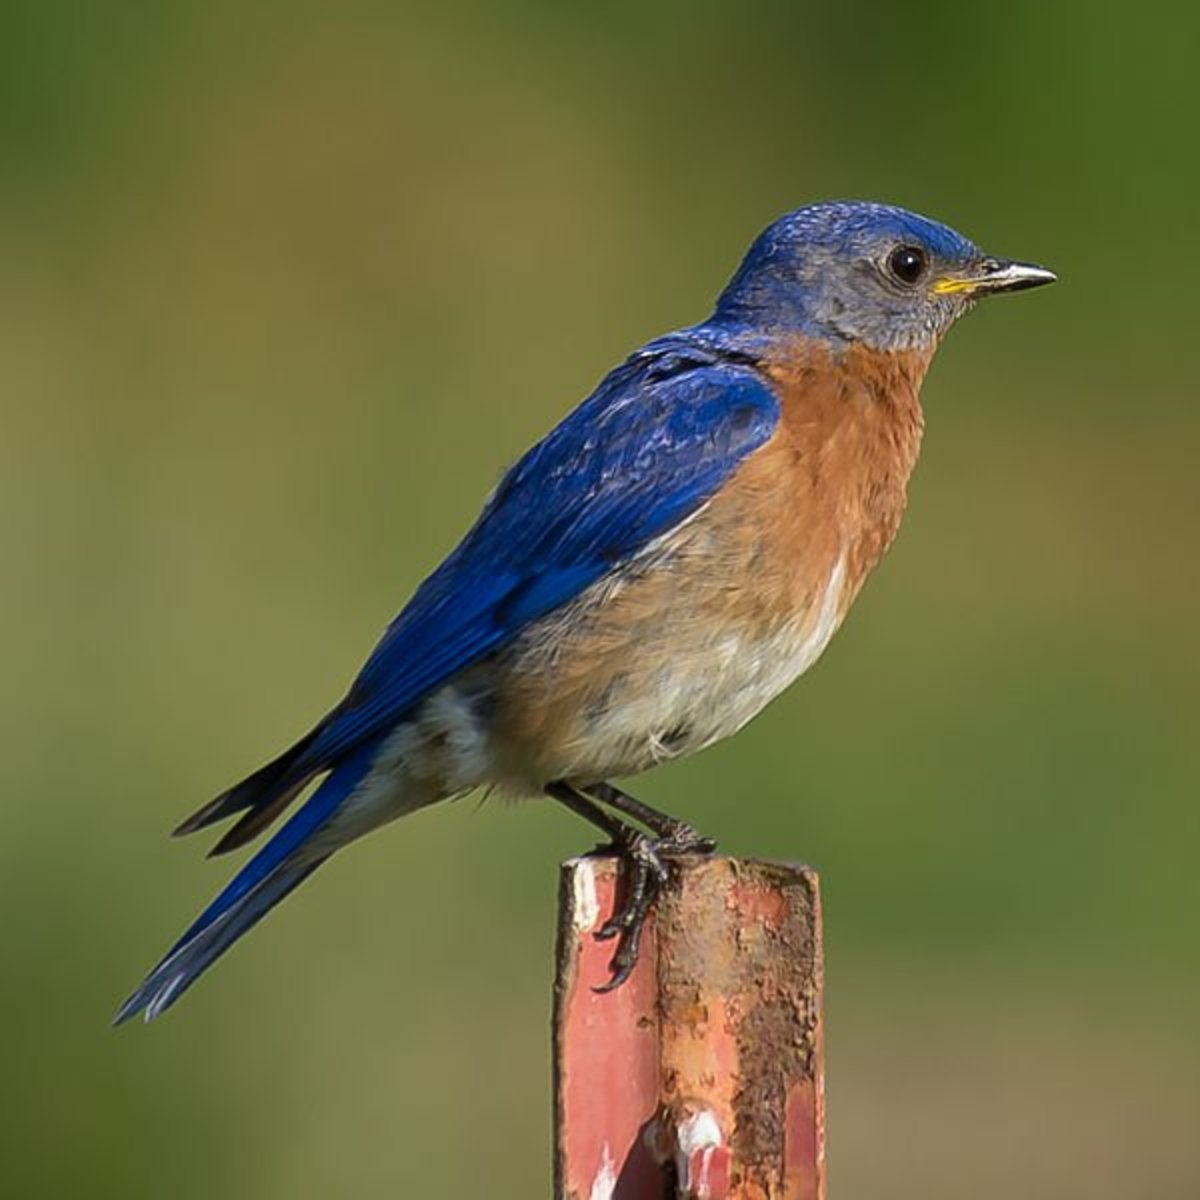 How to Make a Bluebird House